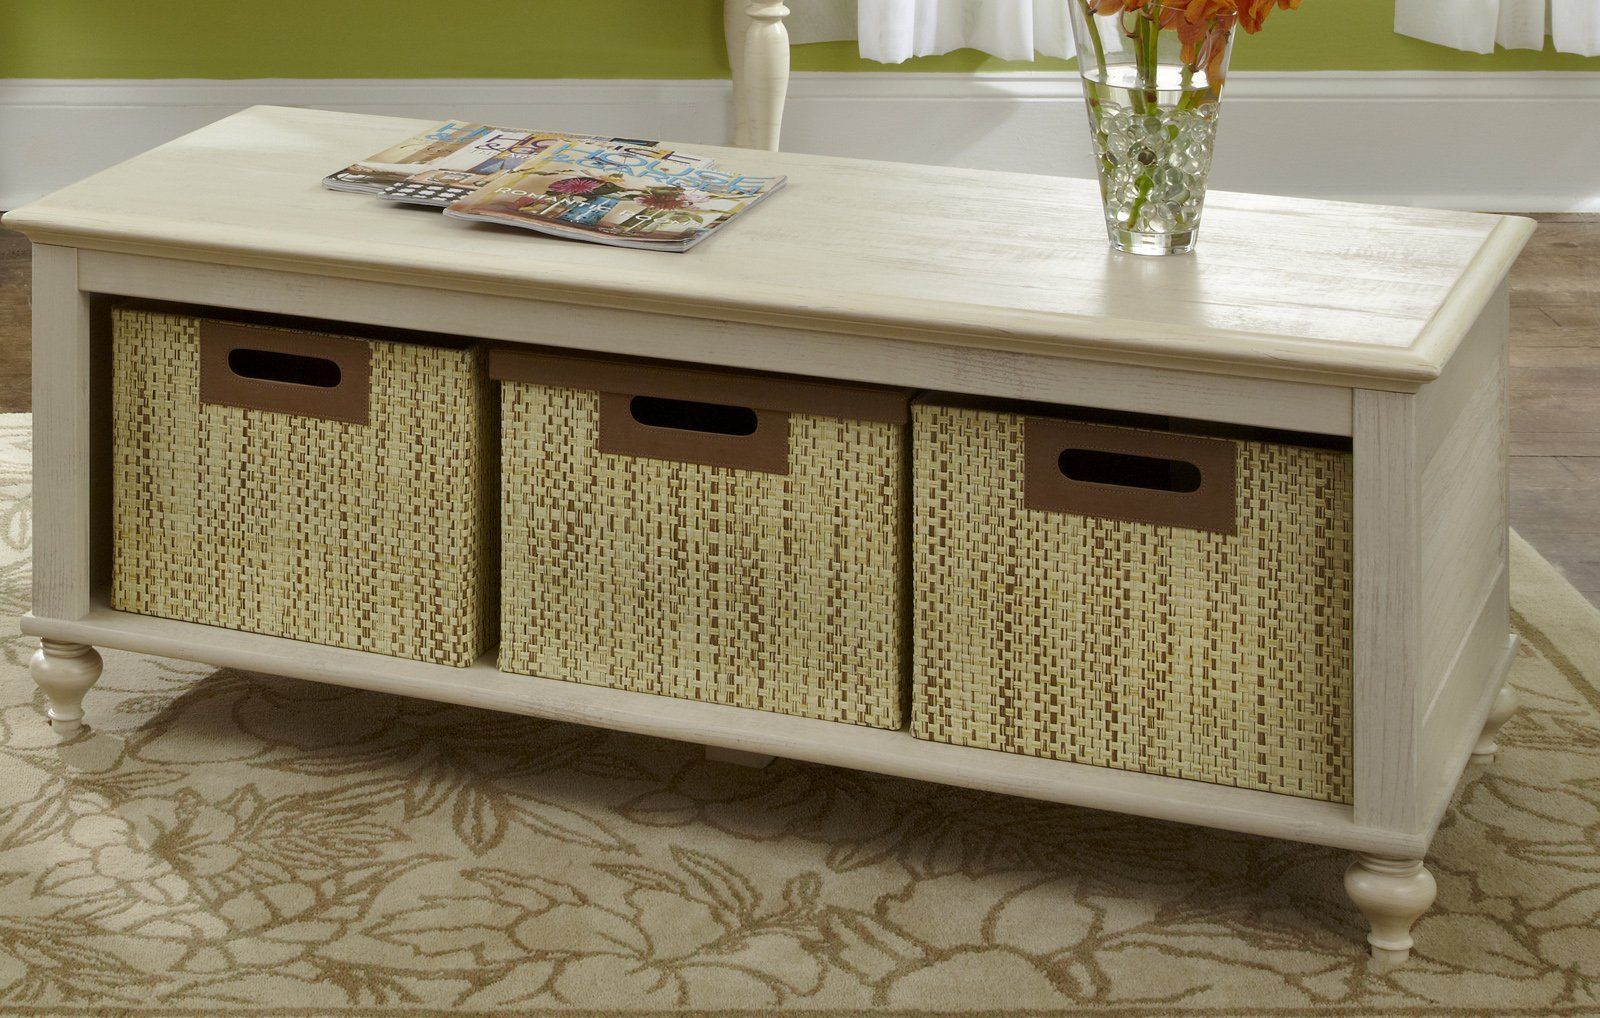 Have To Have It Kathy Ireland Office Bush Furniture Volcano Dusk pertaining to size 1600 X 1018